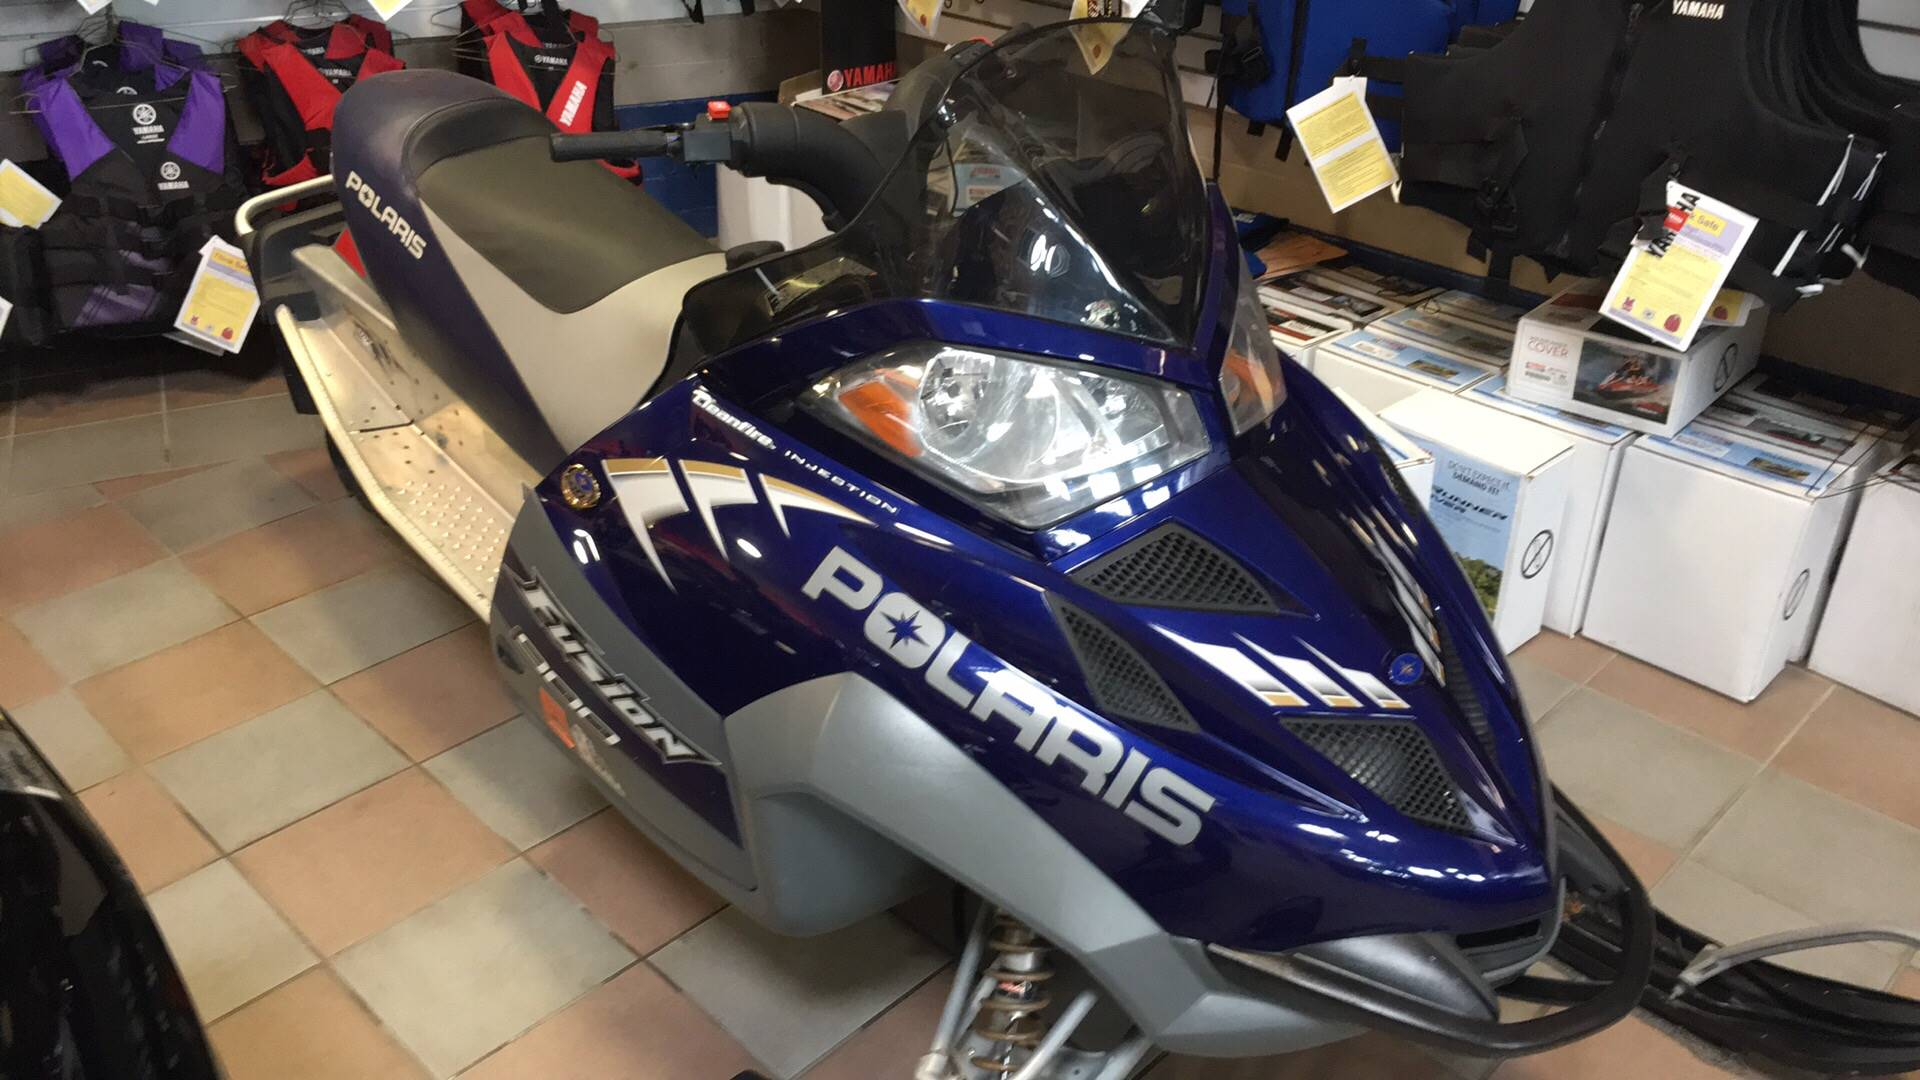 2005 Polaris 900 Fusion 50th Anniversary Edition in Bedford Heights, Ohio